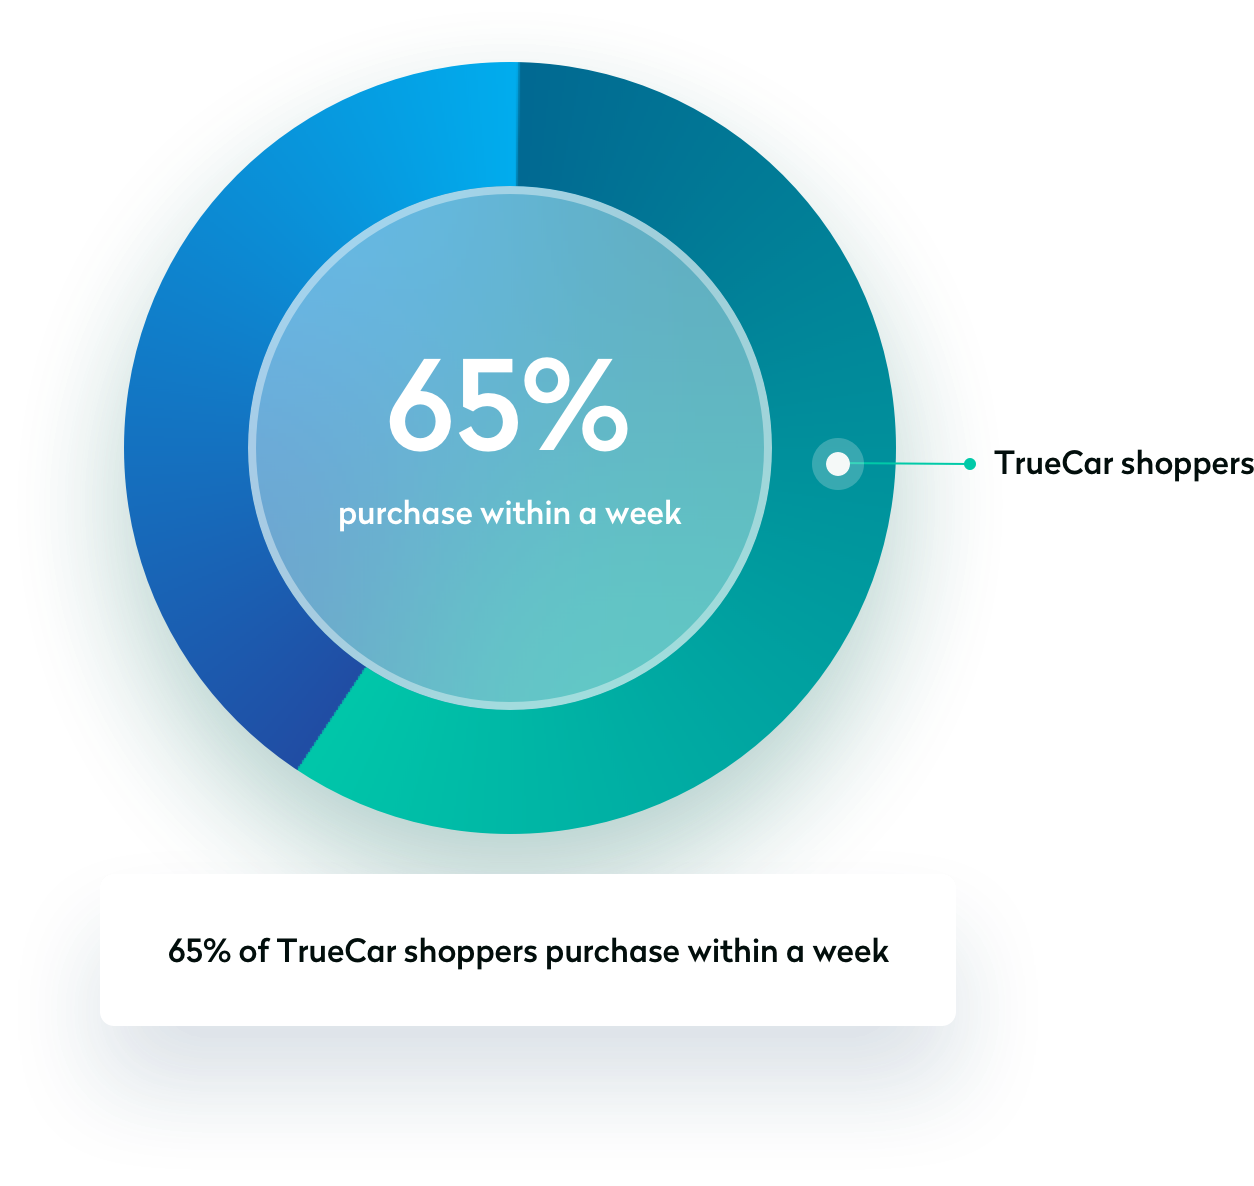 Graphi Showing 65% OF TRUECAR SHOPPERS BUY WITHIN 1 WEEK.